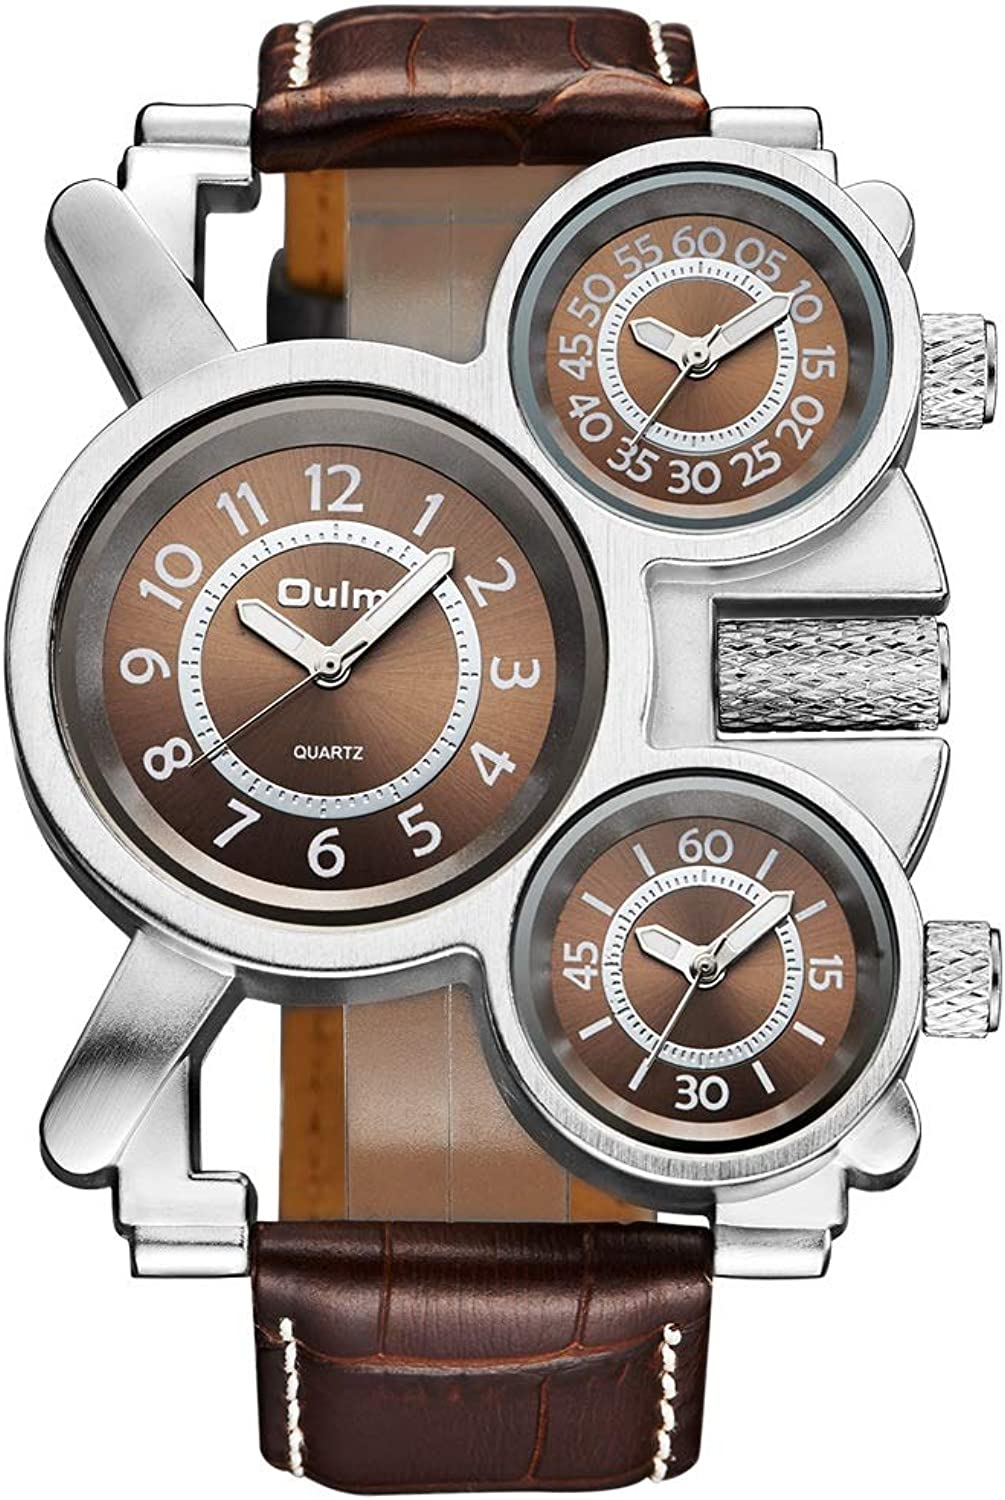 Huijunwenti Men's Watch, MultiFunction Fashion Watch, Multitime Zone Leather Strap, Trendy Style